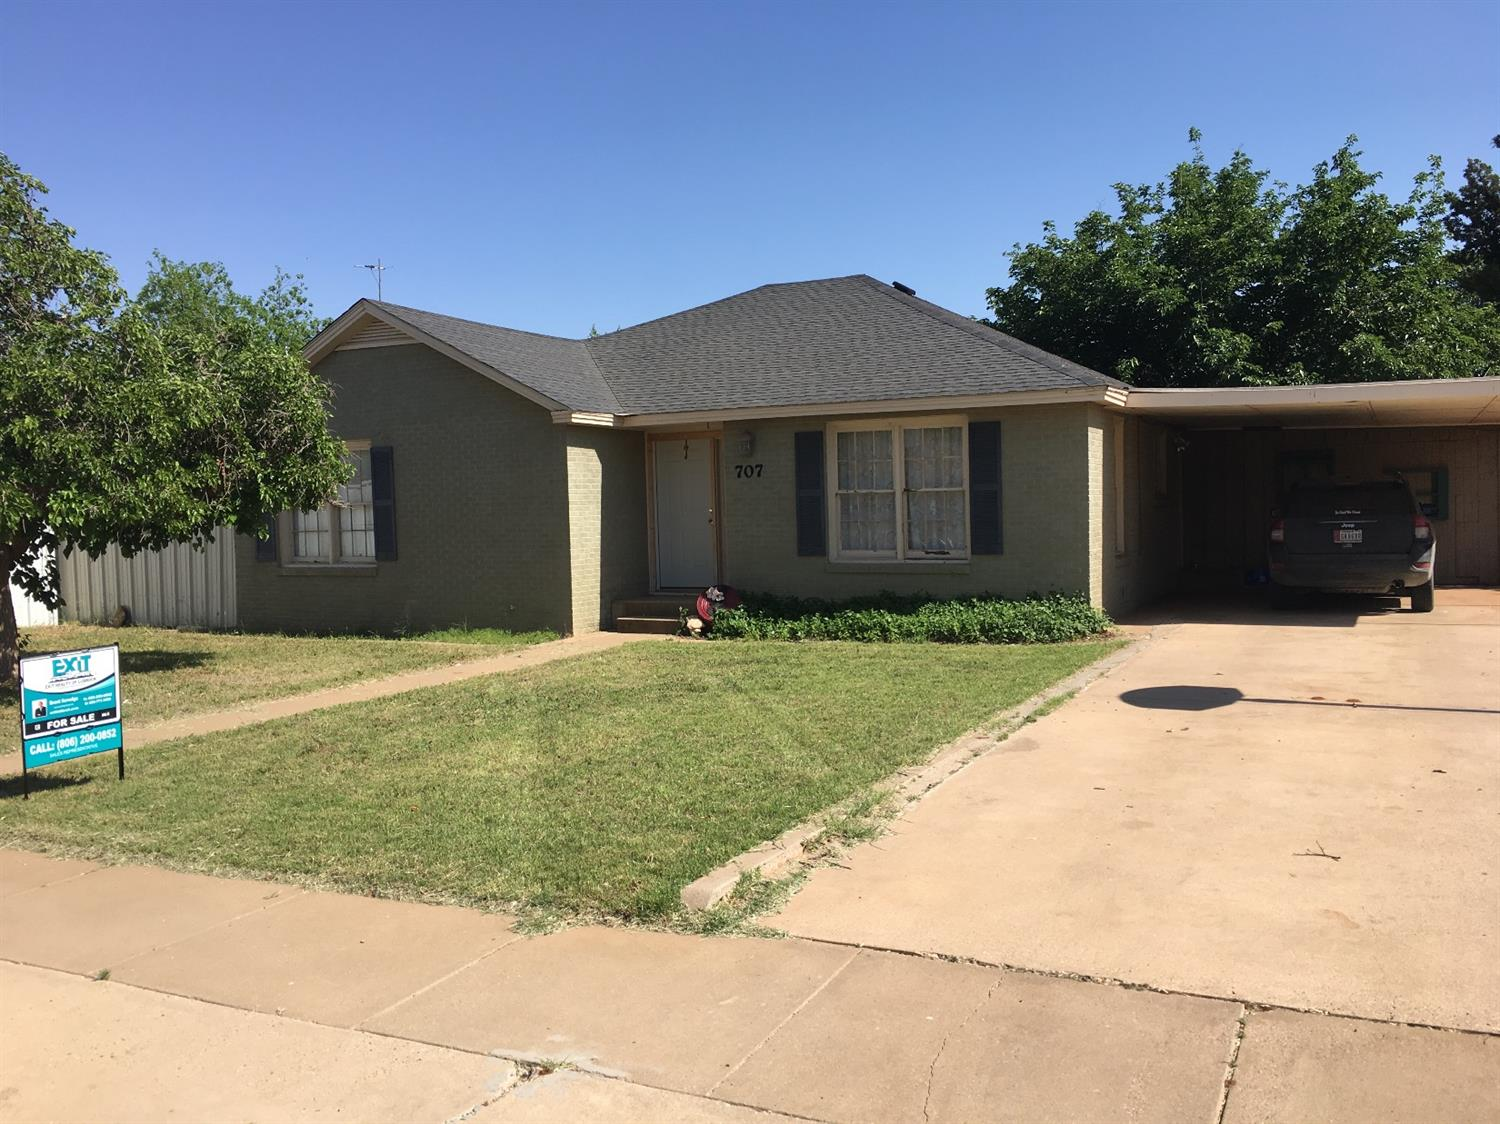 Photo of 707 North 9th  Lamesa  TX